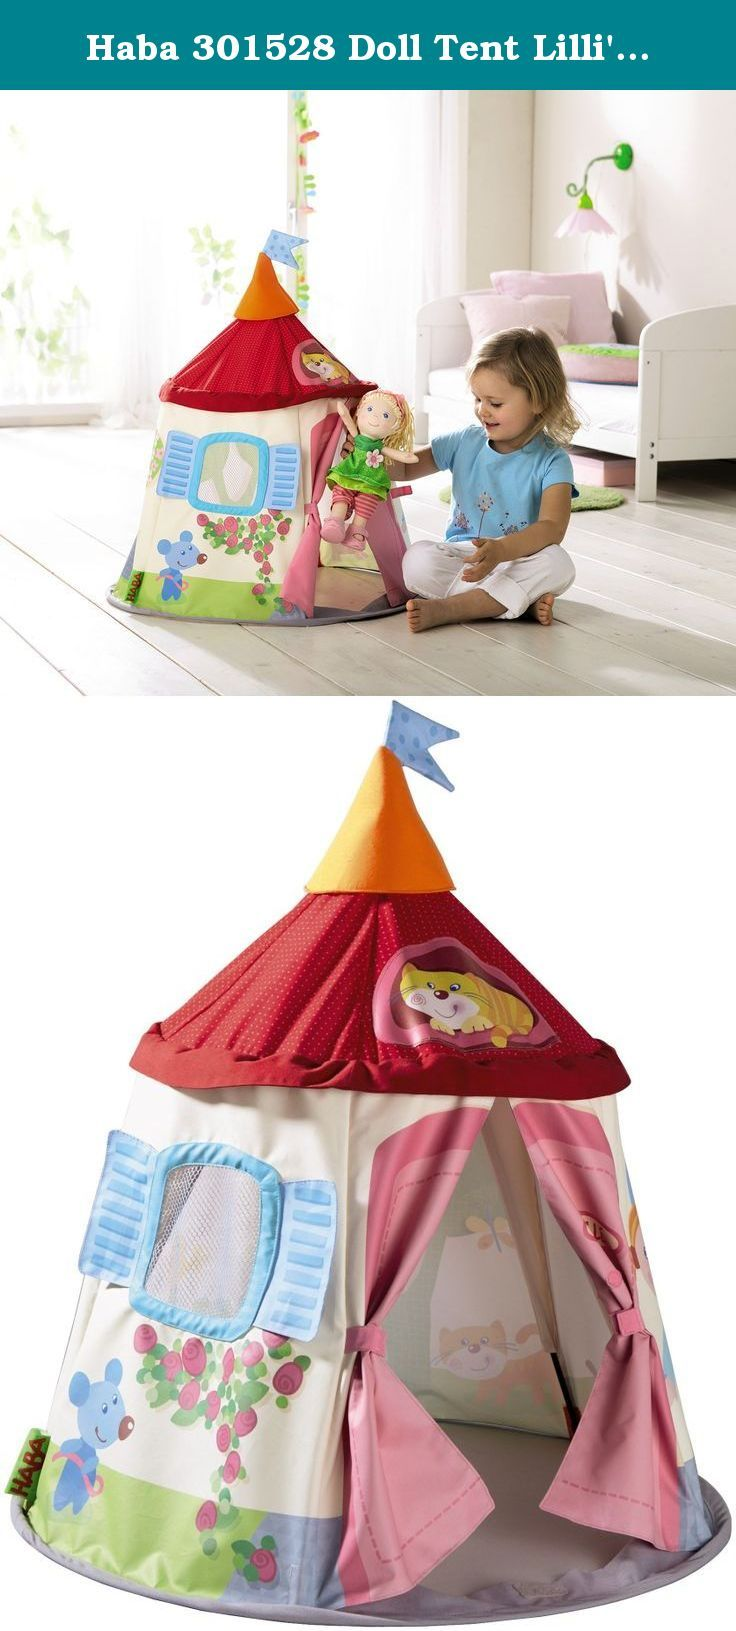 """Haba 301528 Doll Tent Lilli's Garden Lodge. All friends of Lilli are always welcome in this garden lodge. This doll-sized tent is the perfect hideaway for your little ones' doll companions to play and sleep! Easy to fold and transport and also makes a great place to store dolls and their accessories when not in use. Measures 27.75""""."""